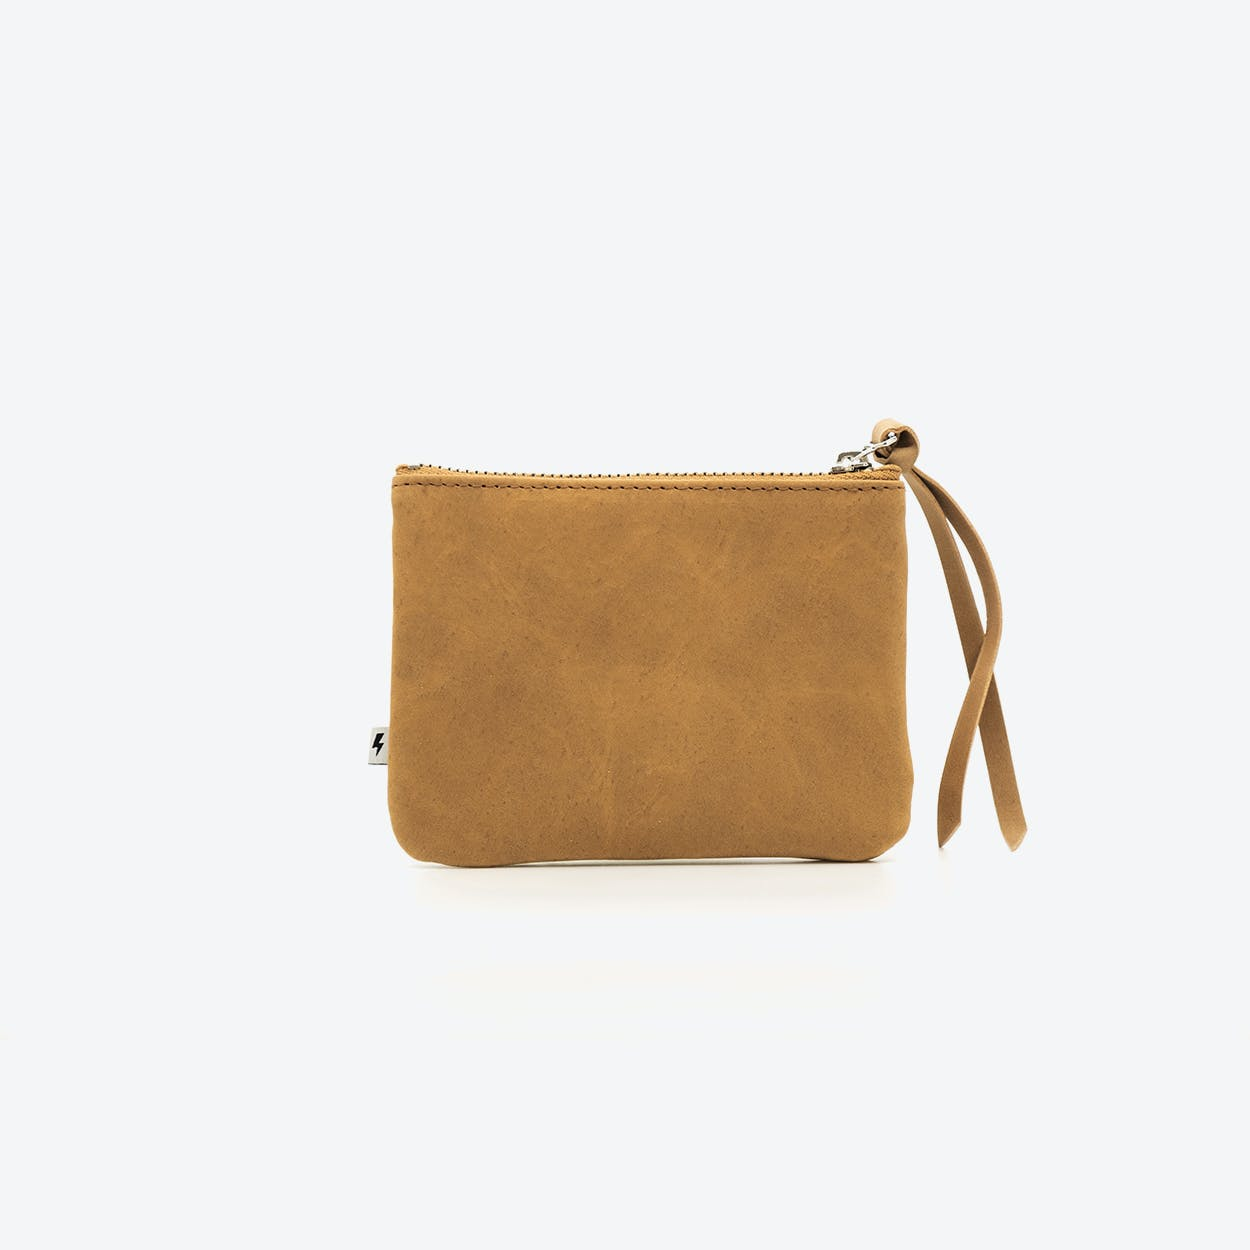 MAX Small Clutch in Brown